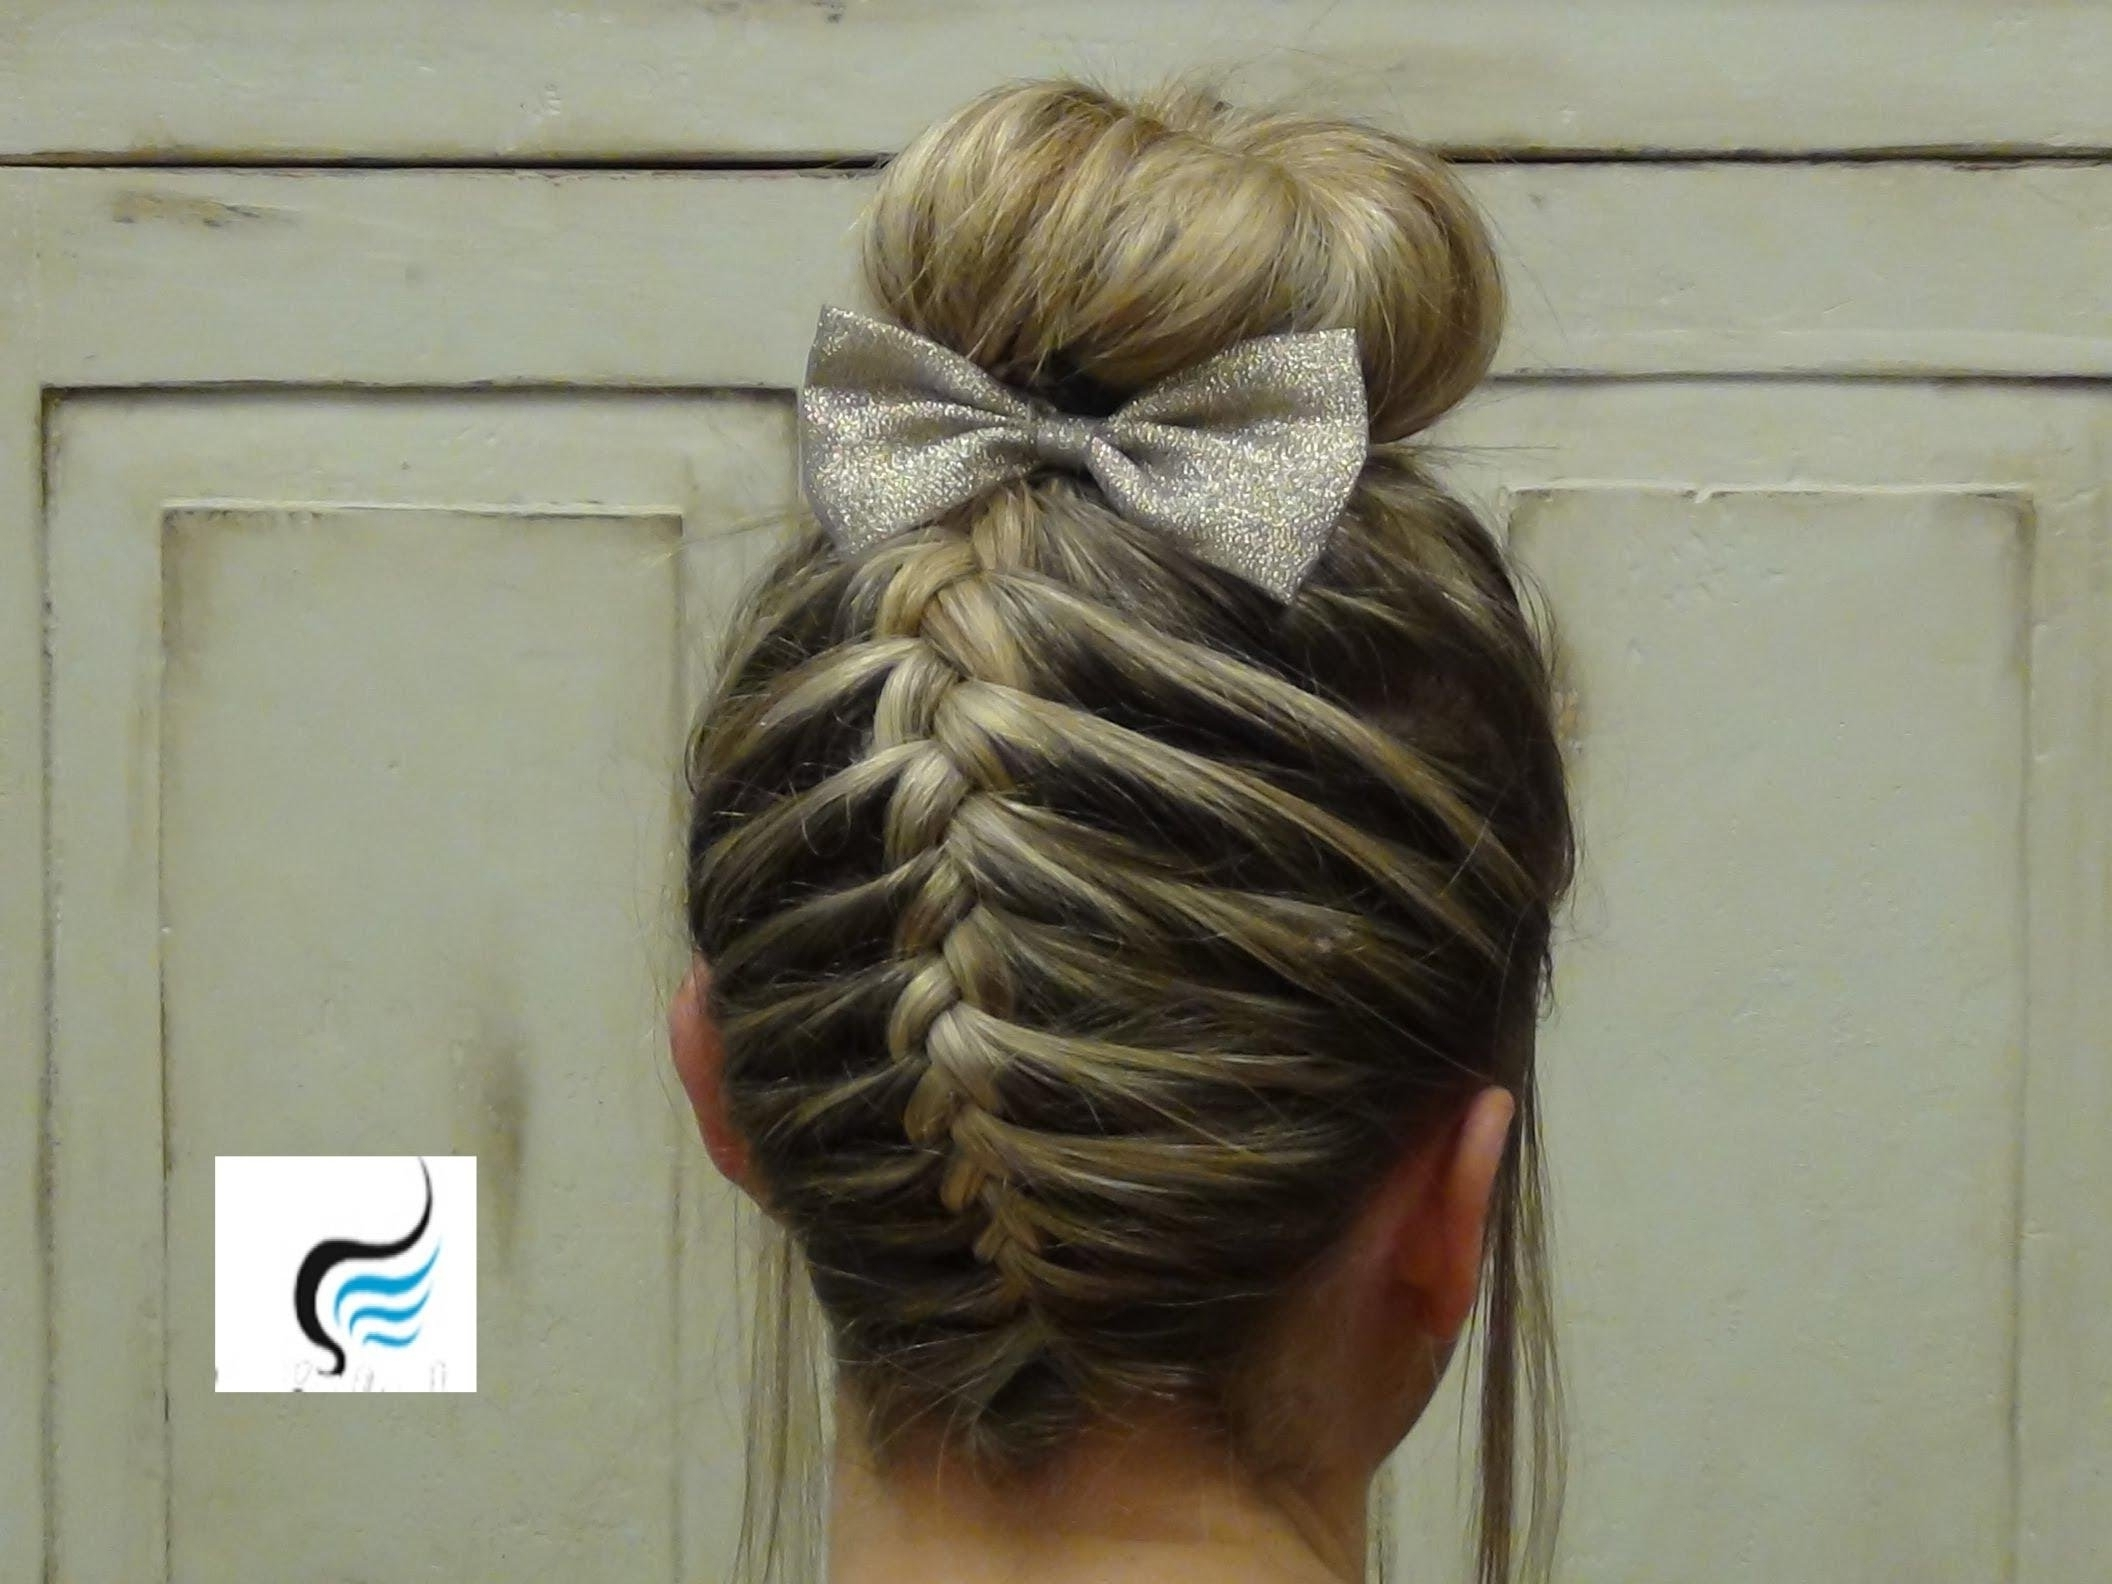 Hairstyles For White Girls Modern Of Braids For White Women's Hair Within Most Recent Braided Hairstyles For White Girl (View 6 of 15)